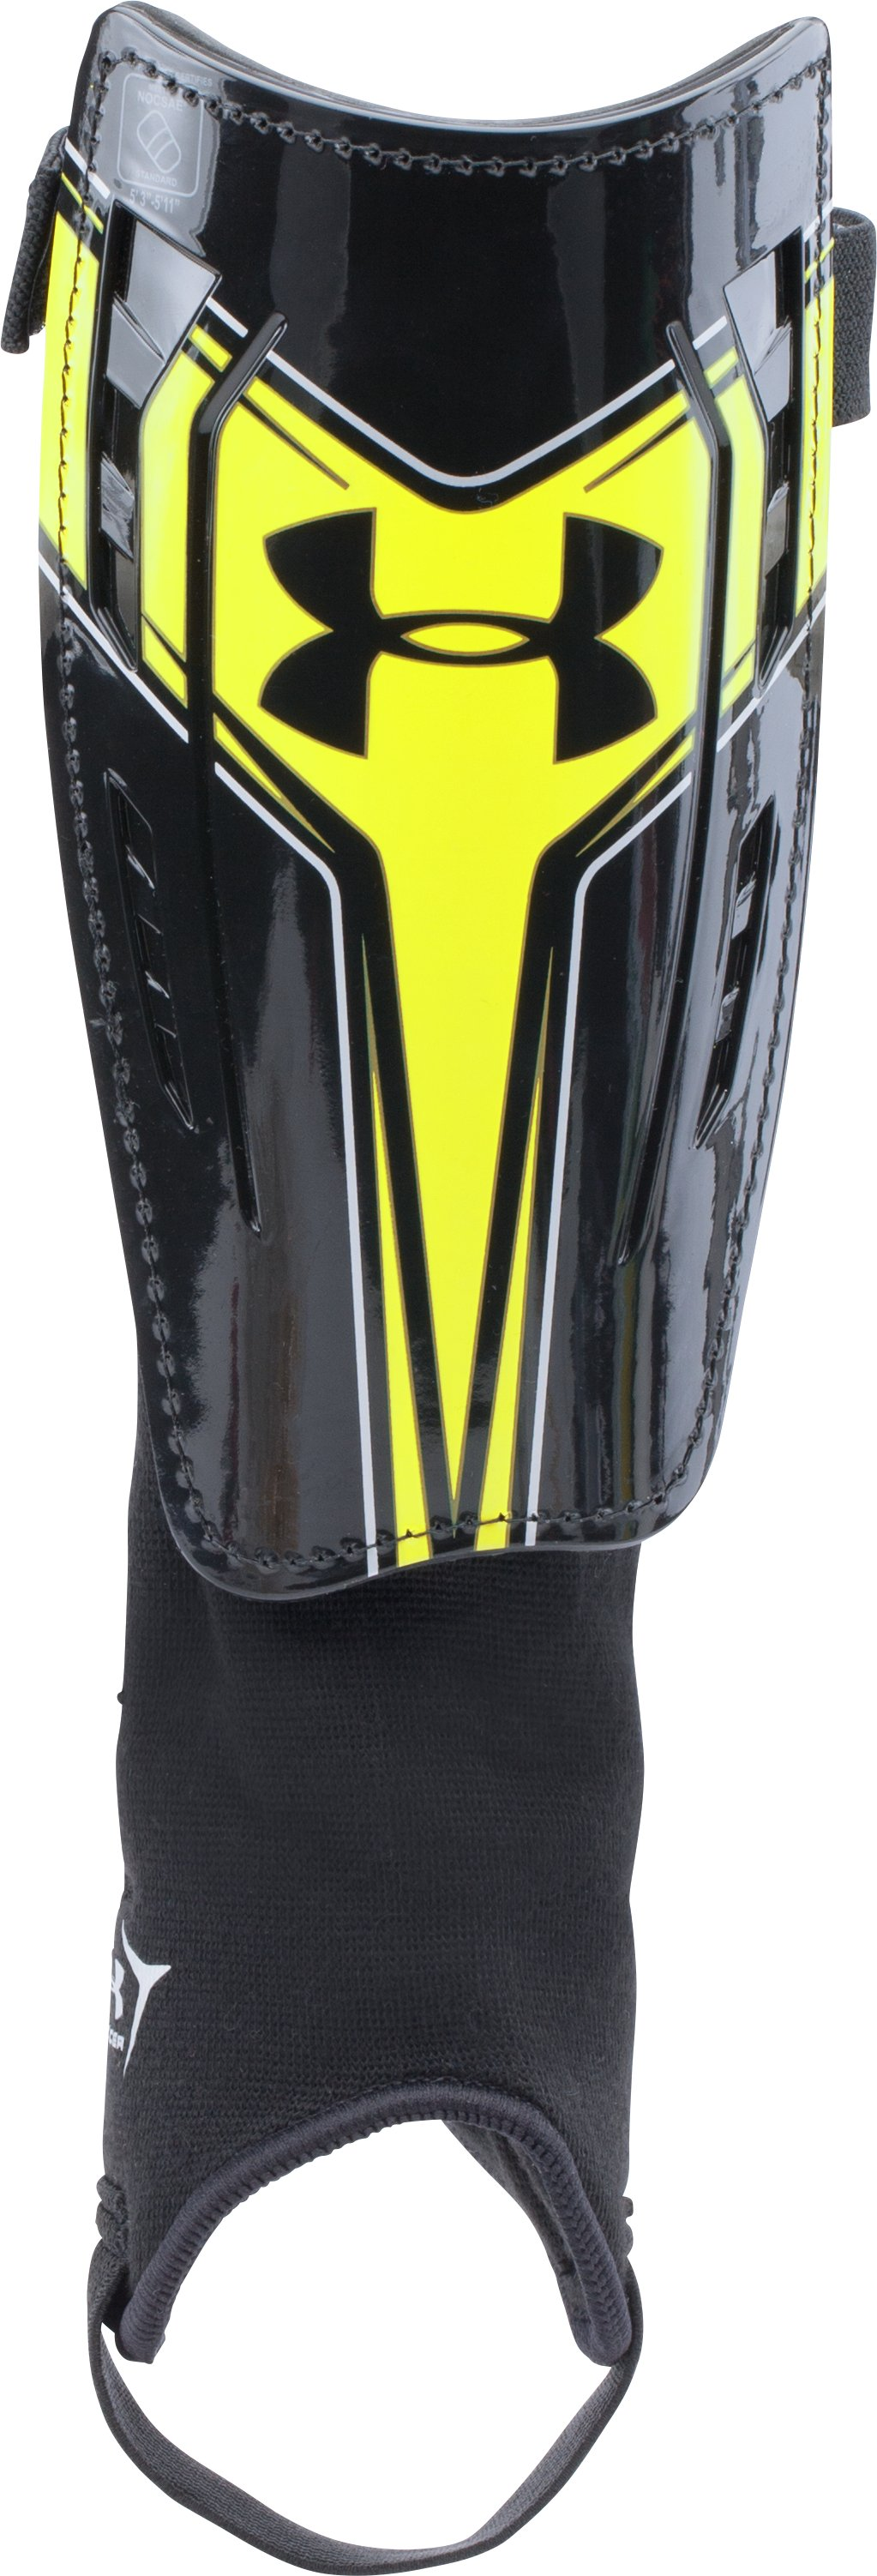 UA Challenge Shinguards, Black